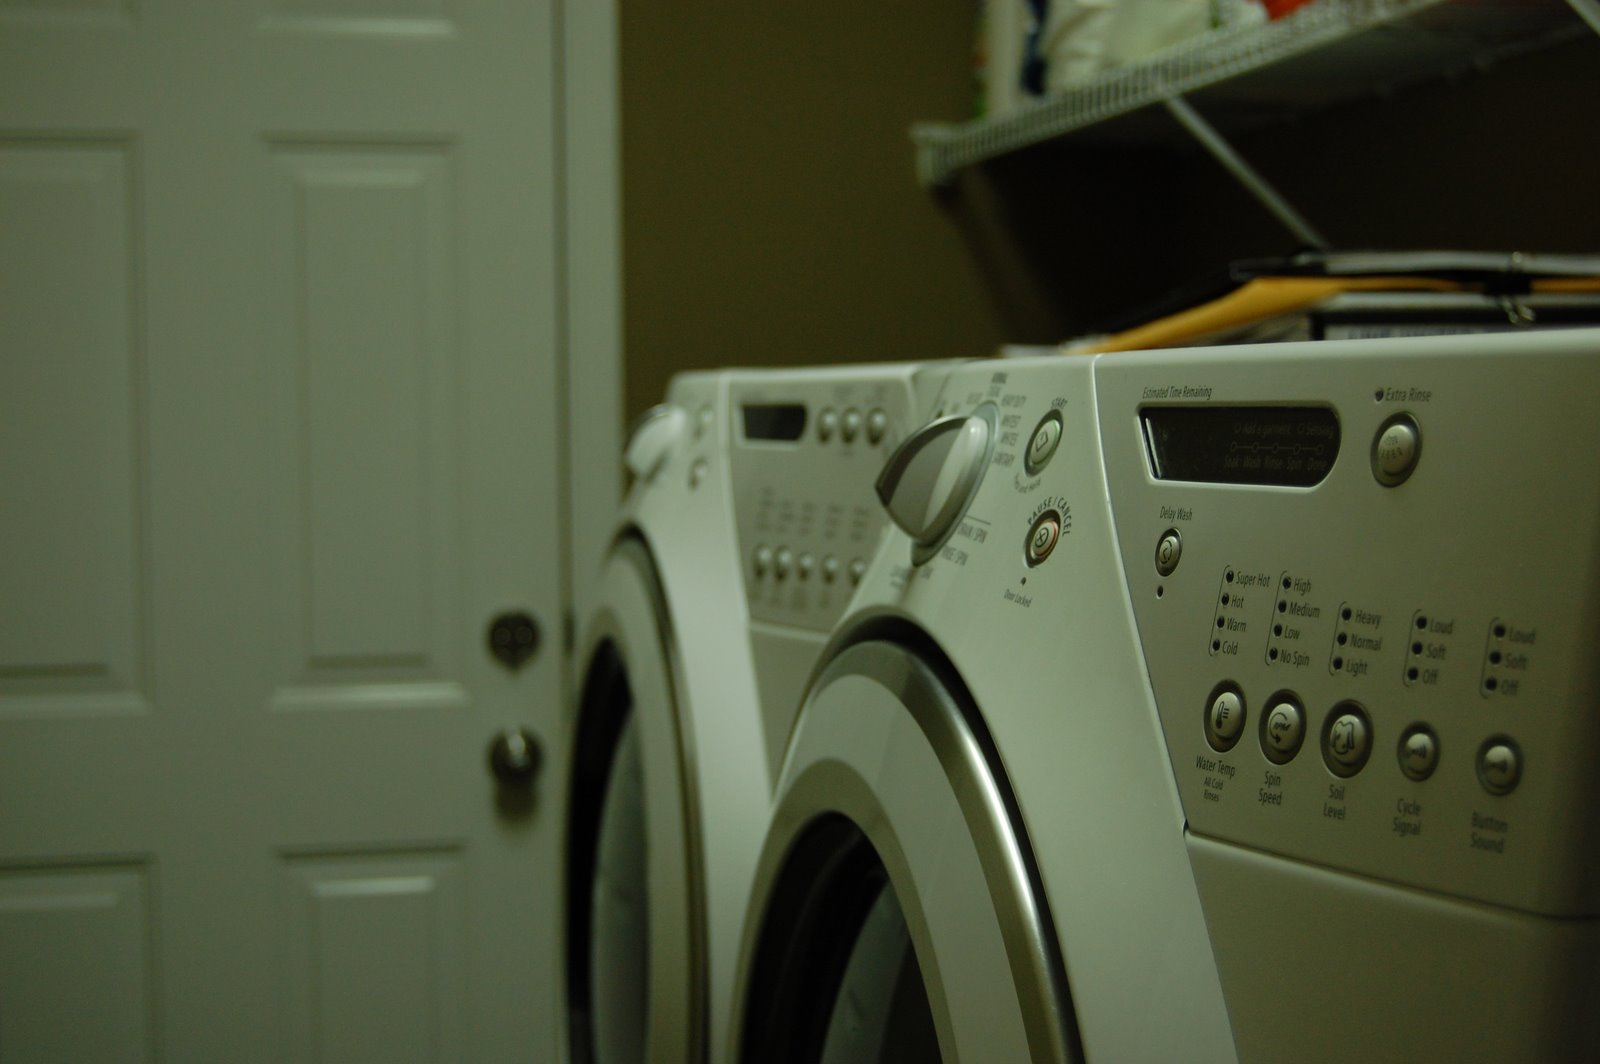 Show Us Your Life - Laundry Room/Spare Rooms | Lamberts Lately